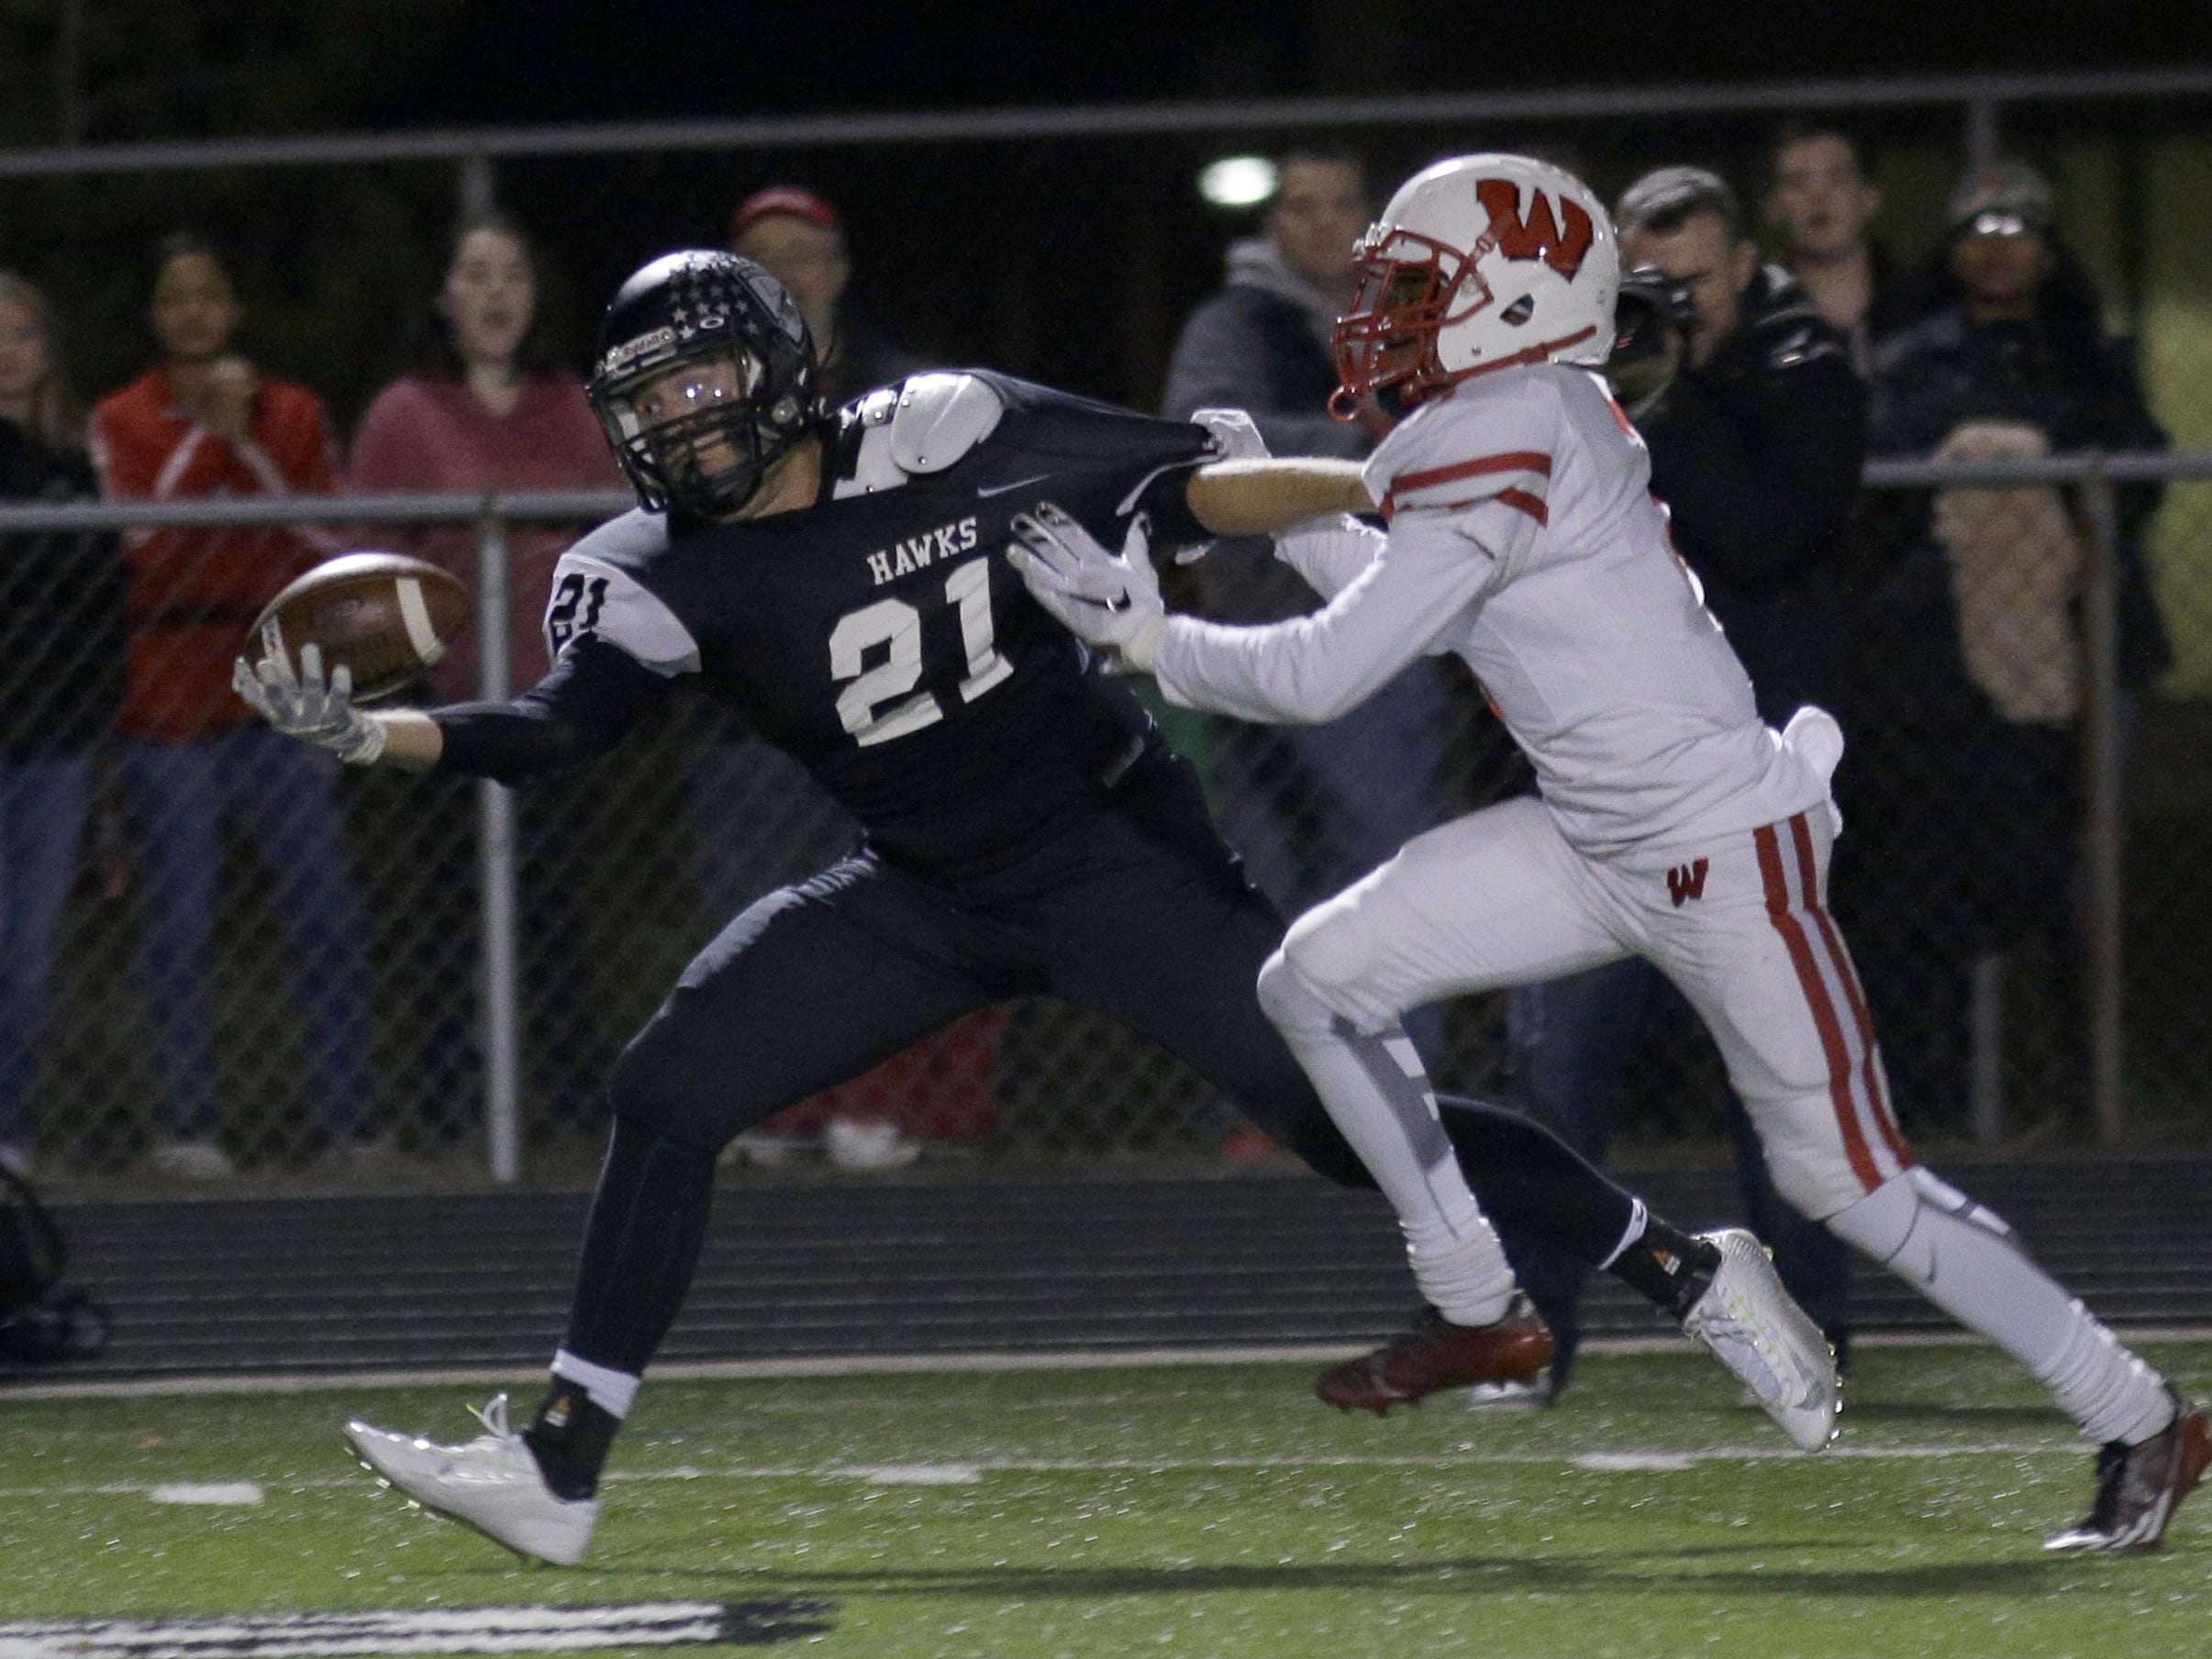 Lakota East's Austin Hatfield tries to catch the ball over Lakota West defender Jalen Hall during their game Friday. Lakota West won the game 35-0 and is headed to the playoffs.